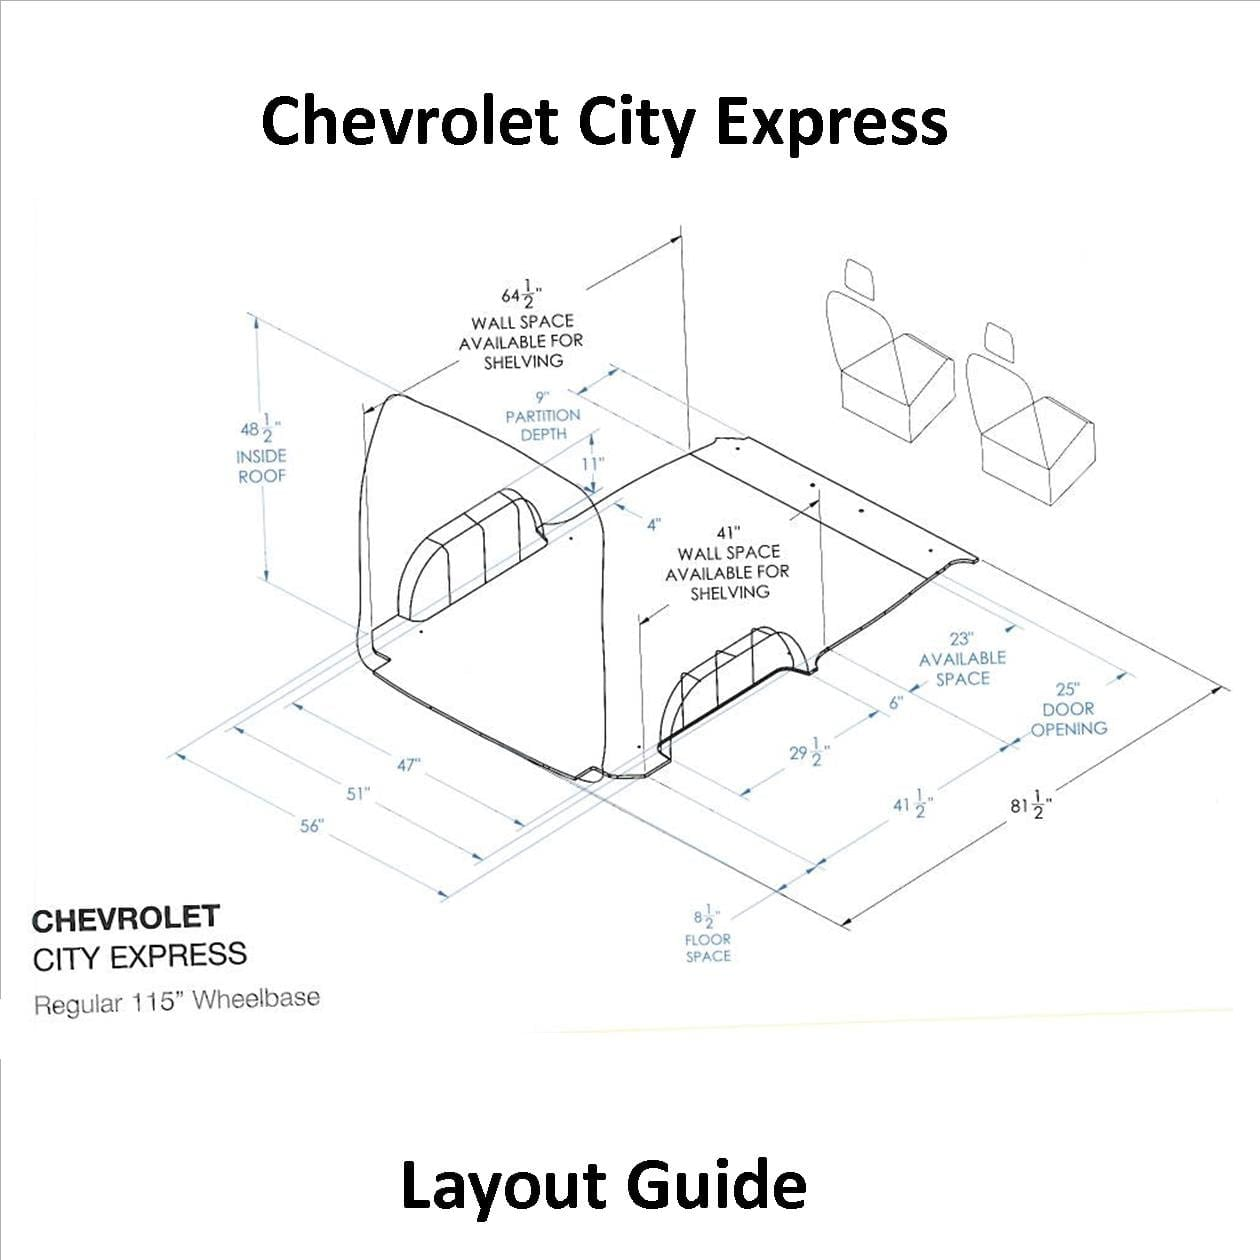 Gm City Express Layout Guide